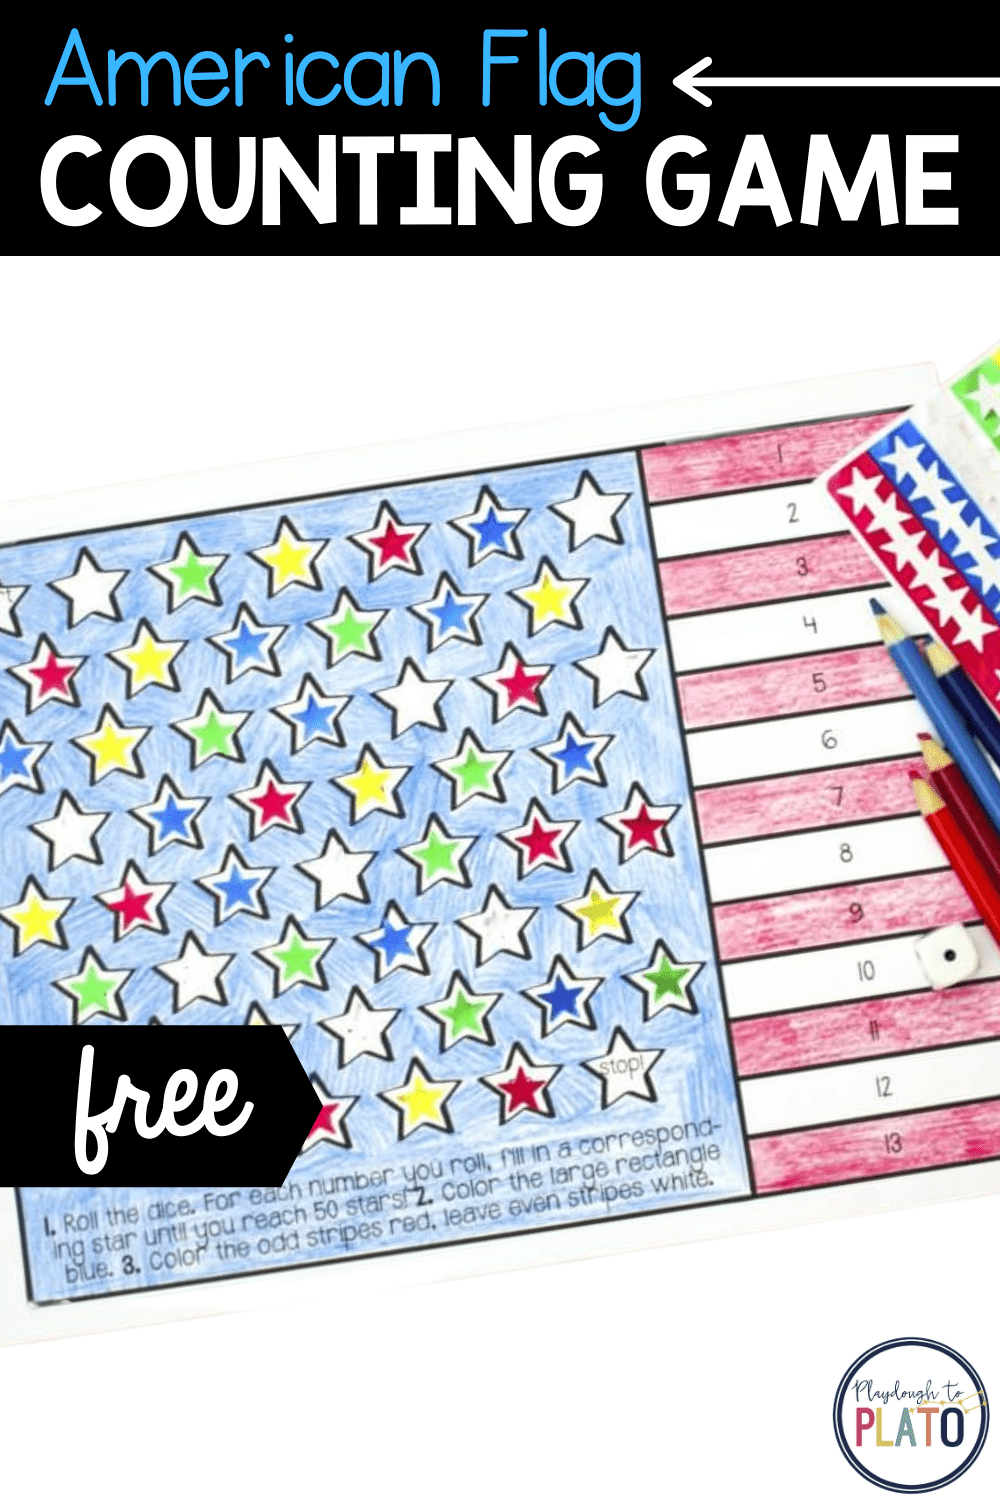 American Flag Counting Game